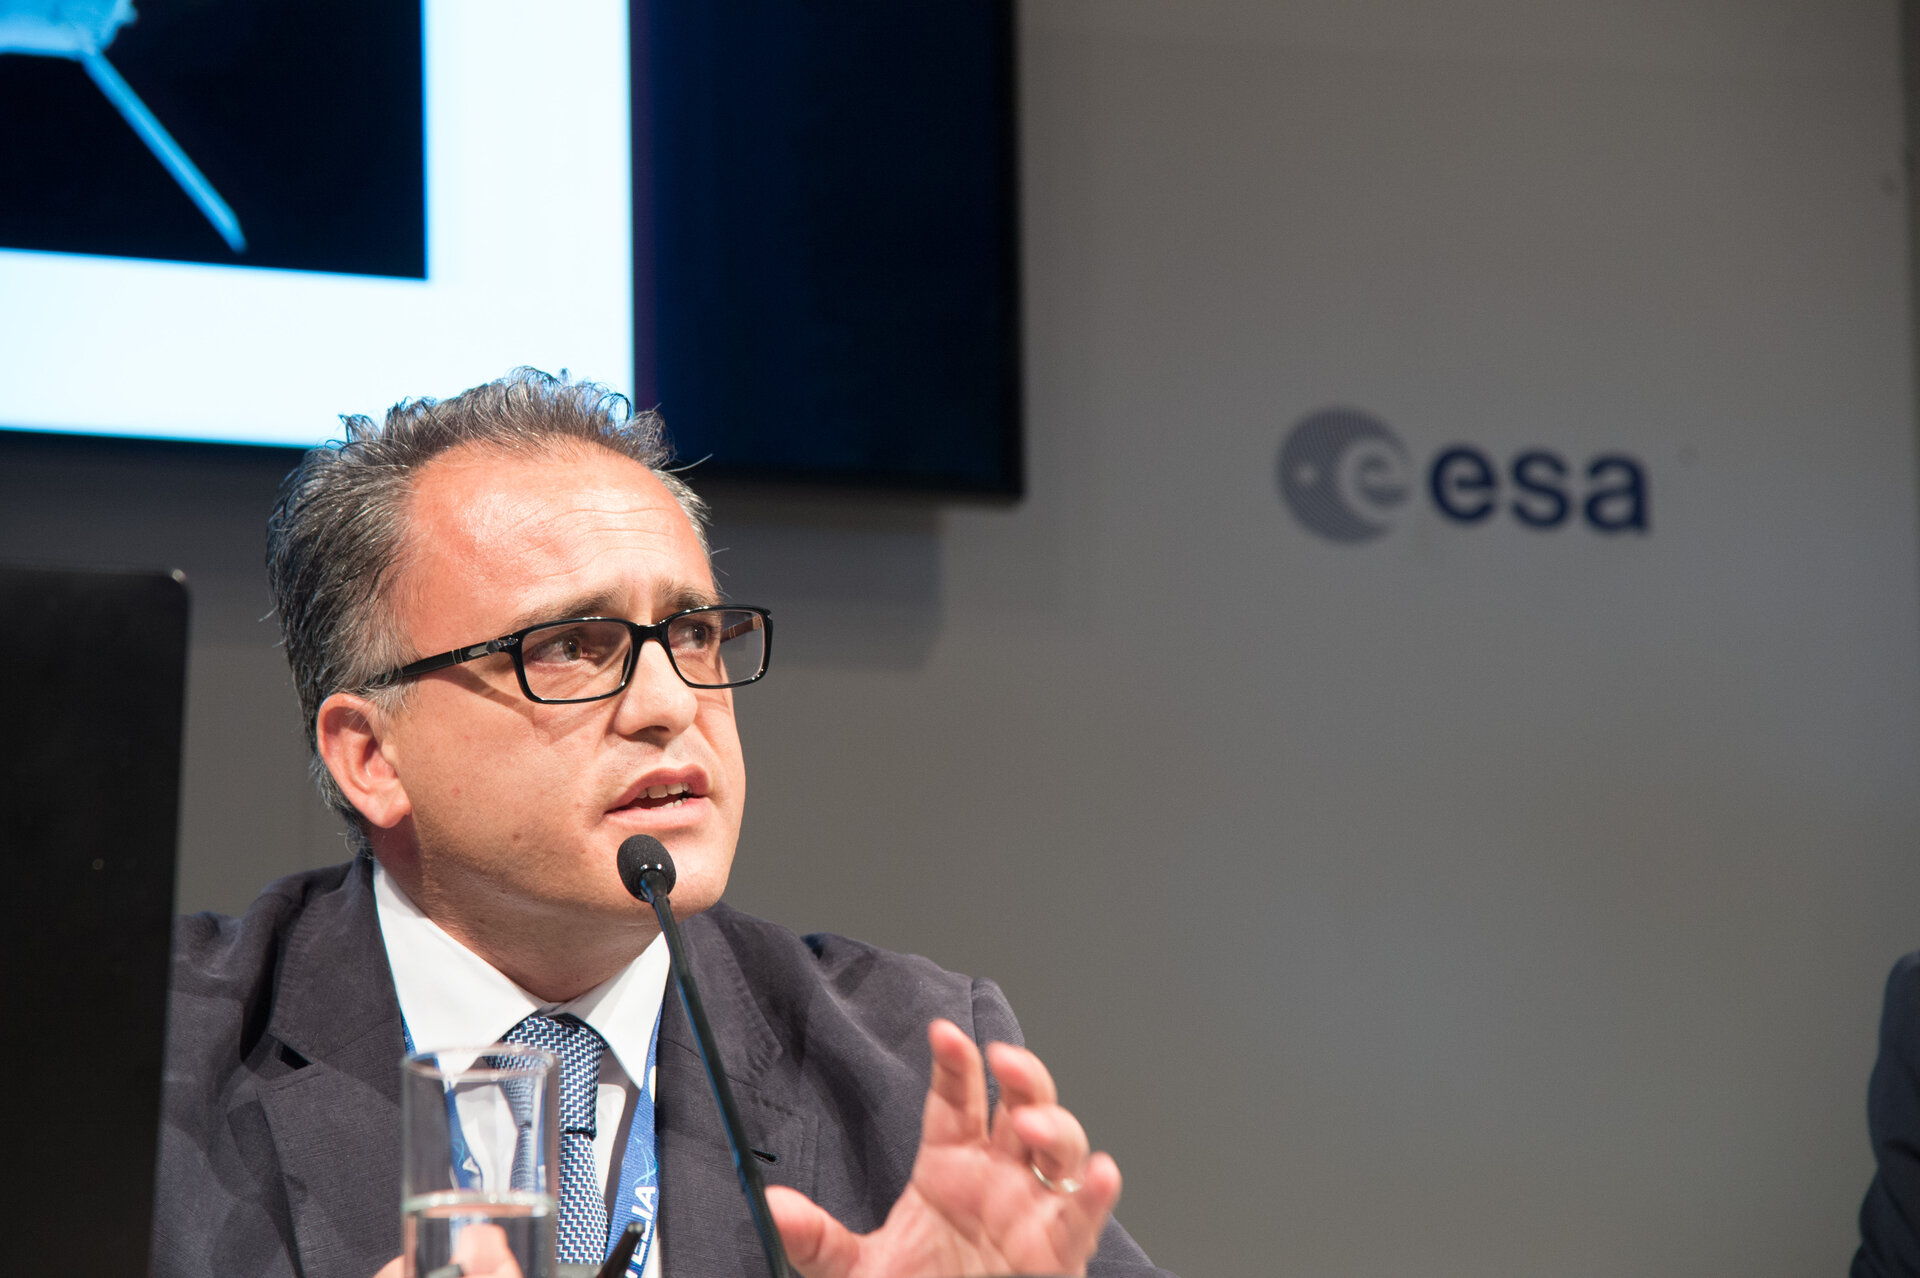 Giorgio Tumino, ESA IXV Programme Manager, presents first results to the press